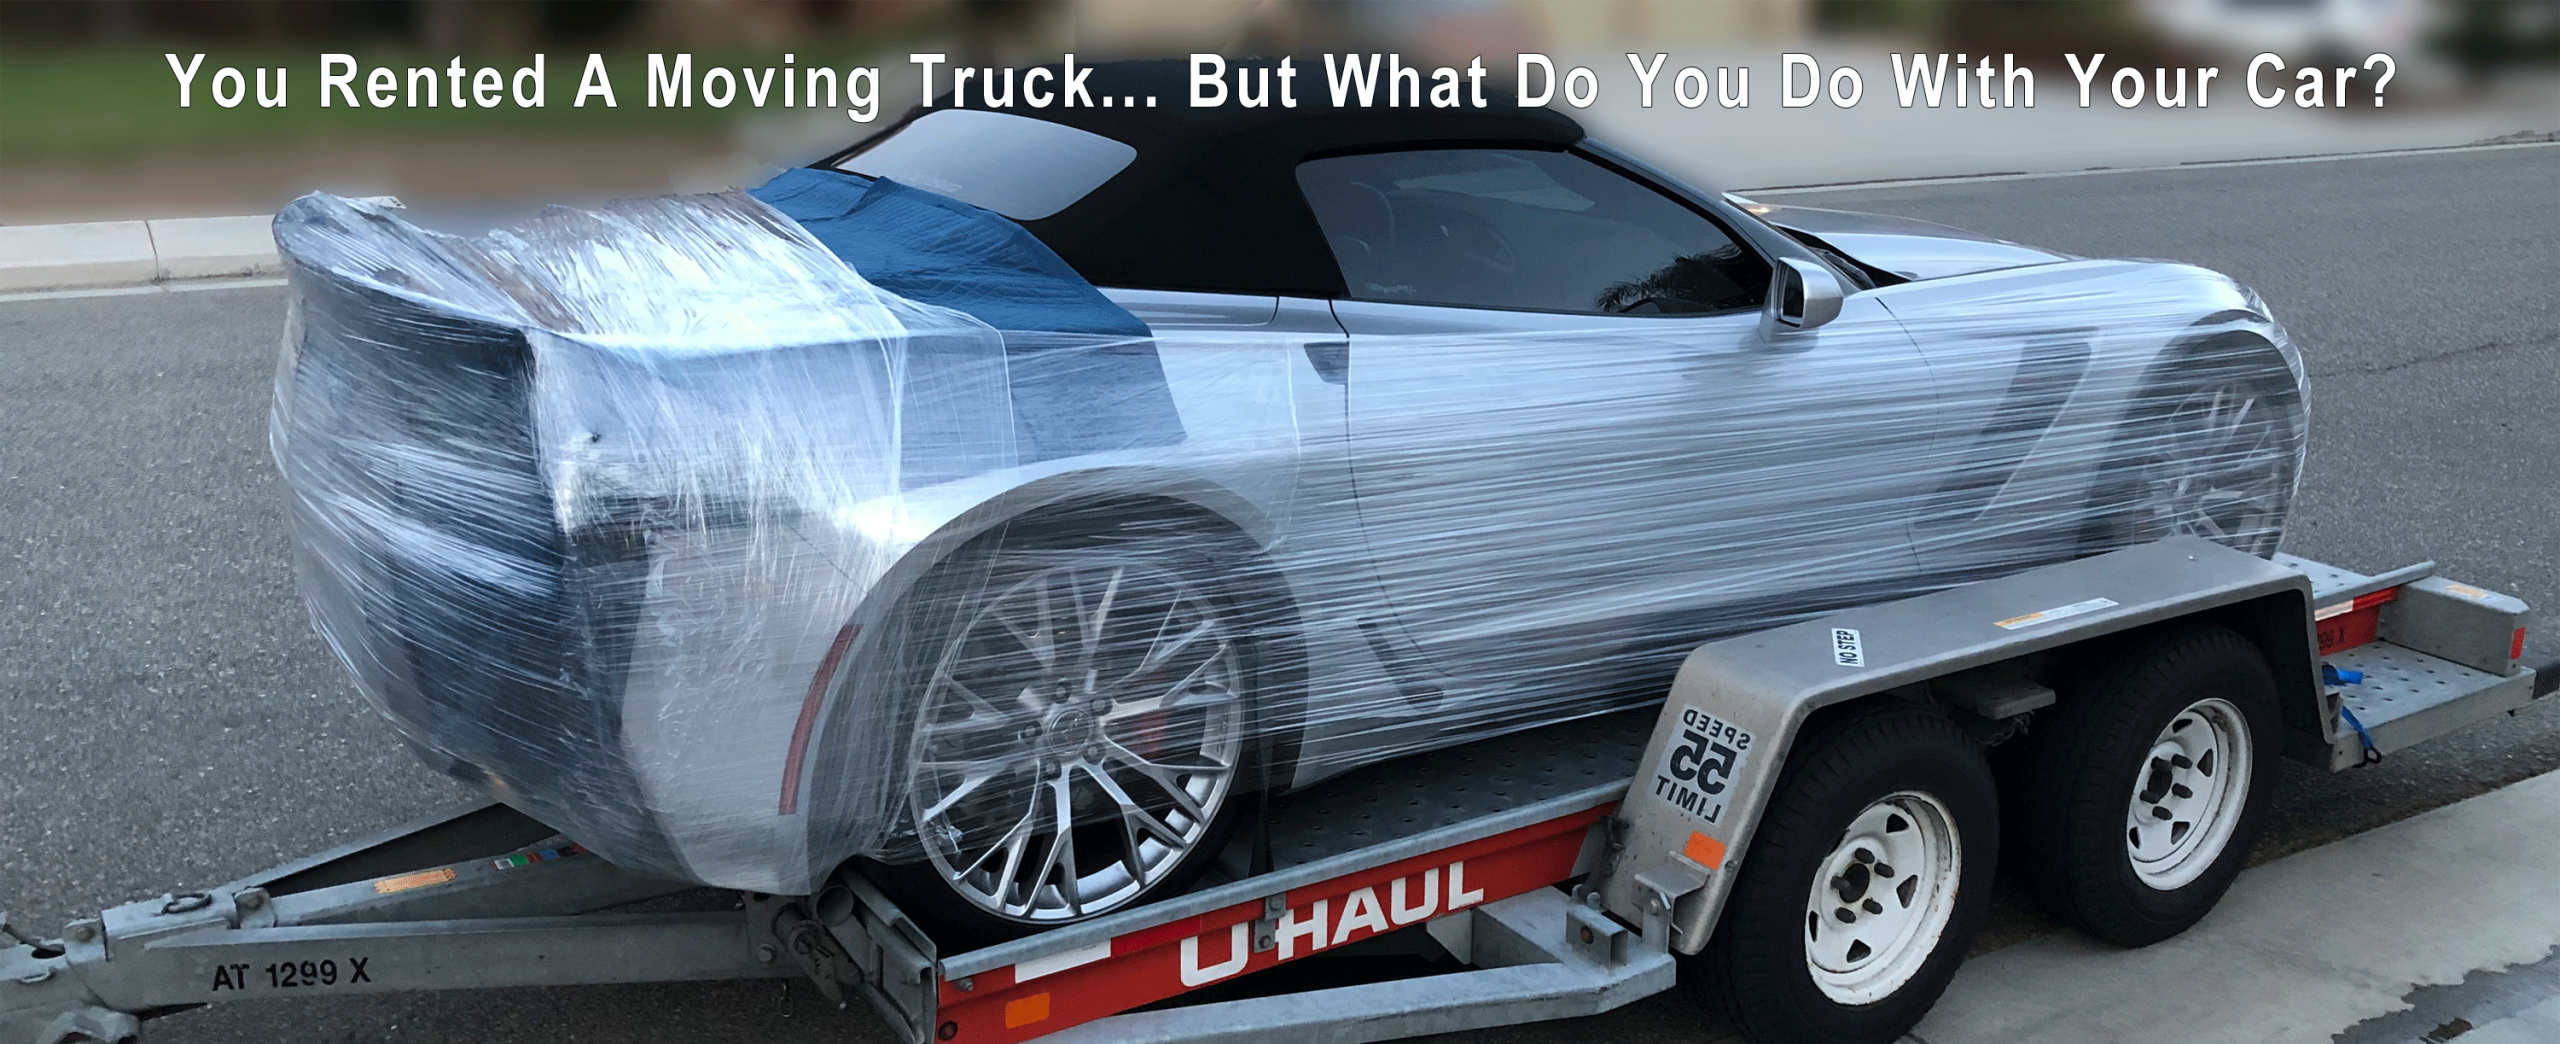 We Tow Your Vehicle Behind Your Moving Van So You Don't Have To